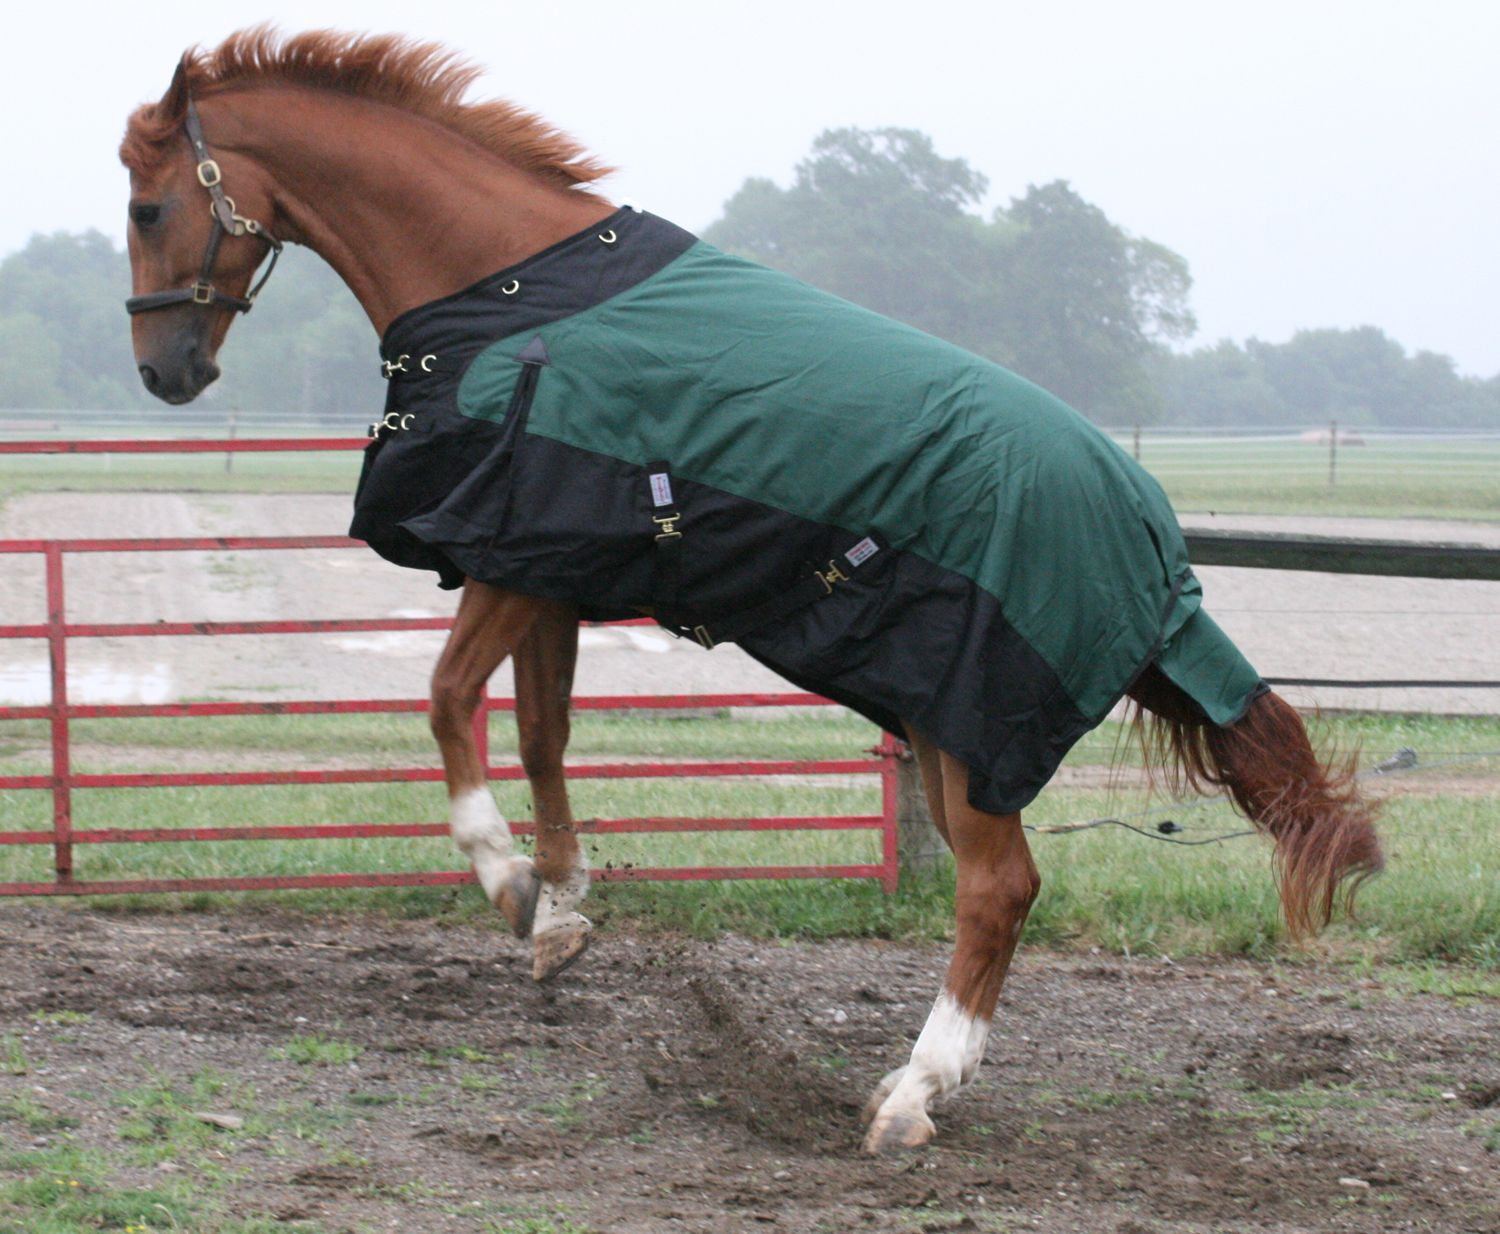 Klue showing off during the horse blanket shoot!